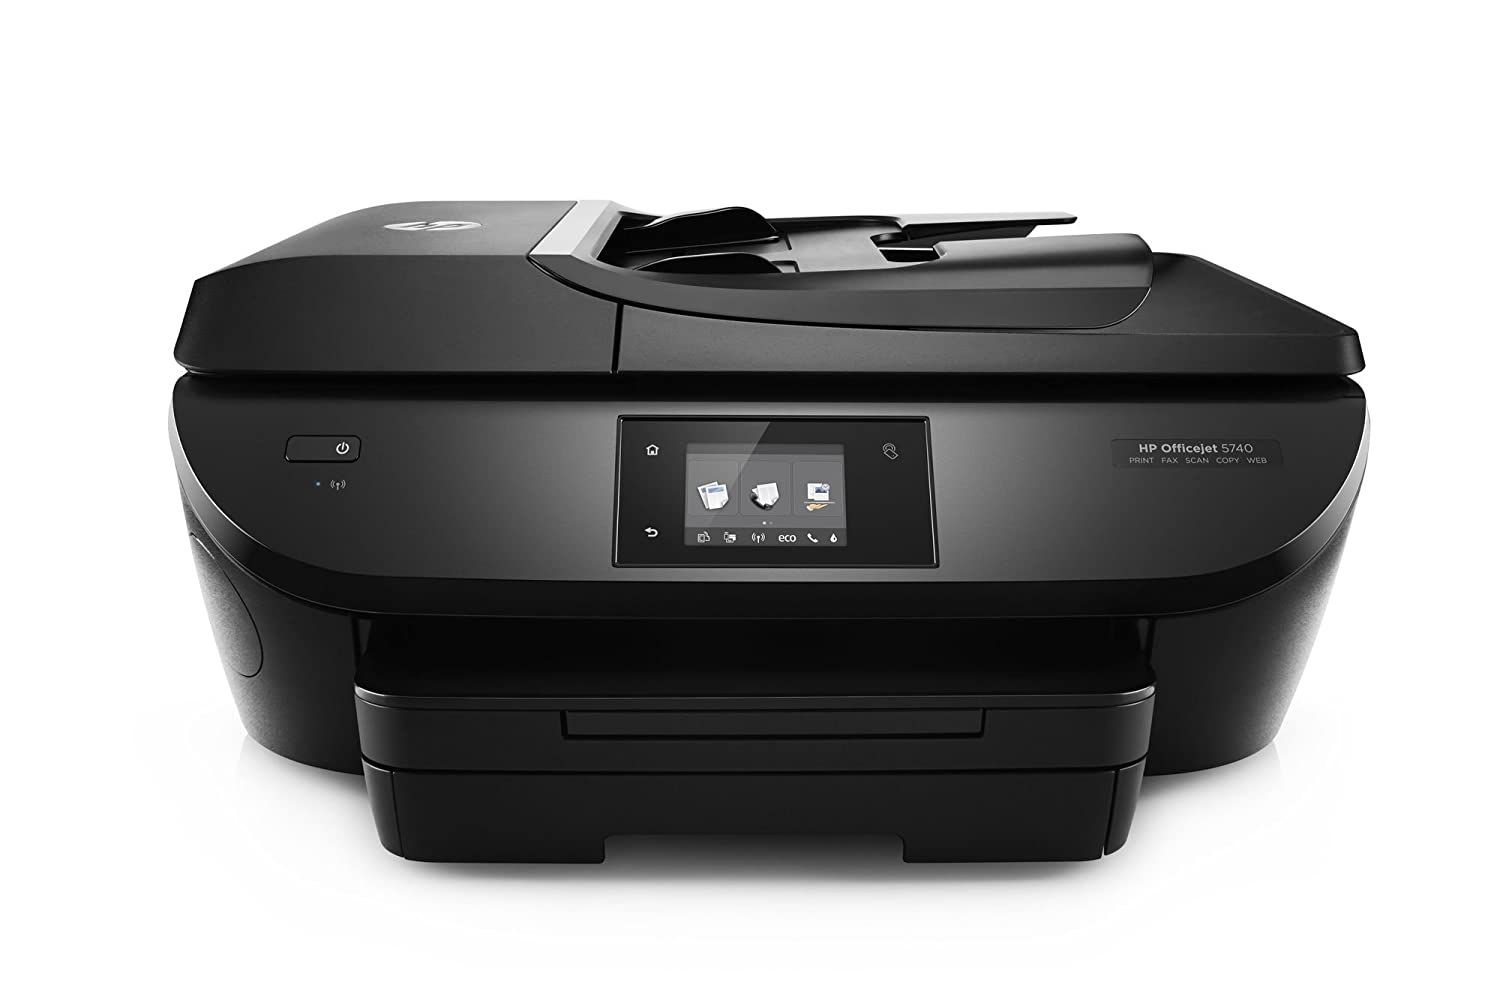 HP OfficeJet 5740 e-All-in-One Printer, Instant Ink Compatible - Black